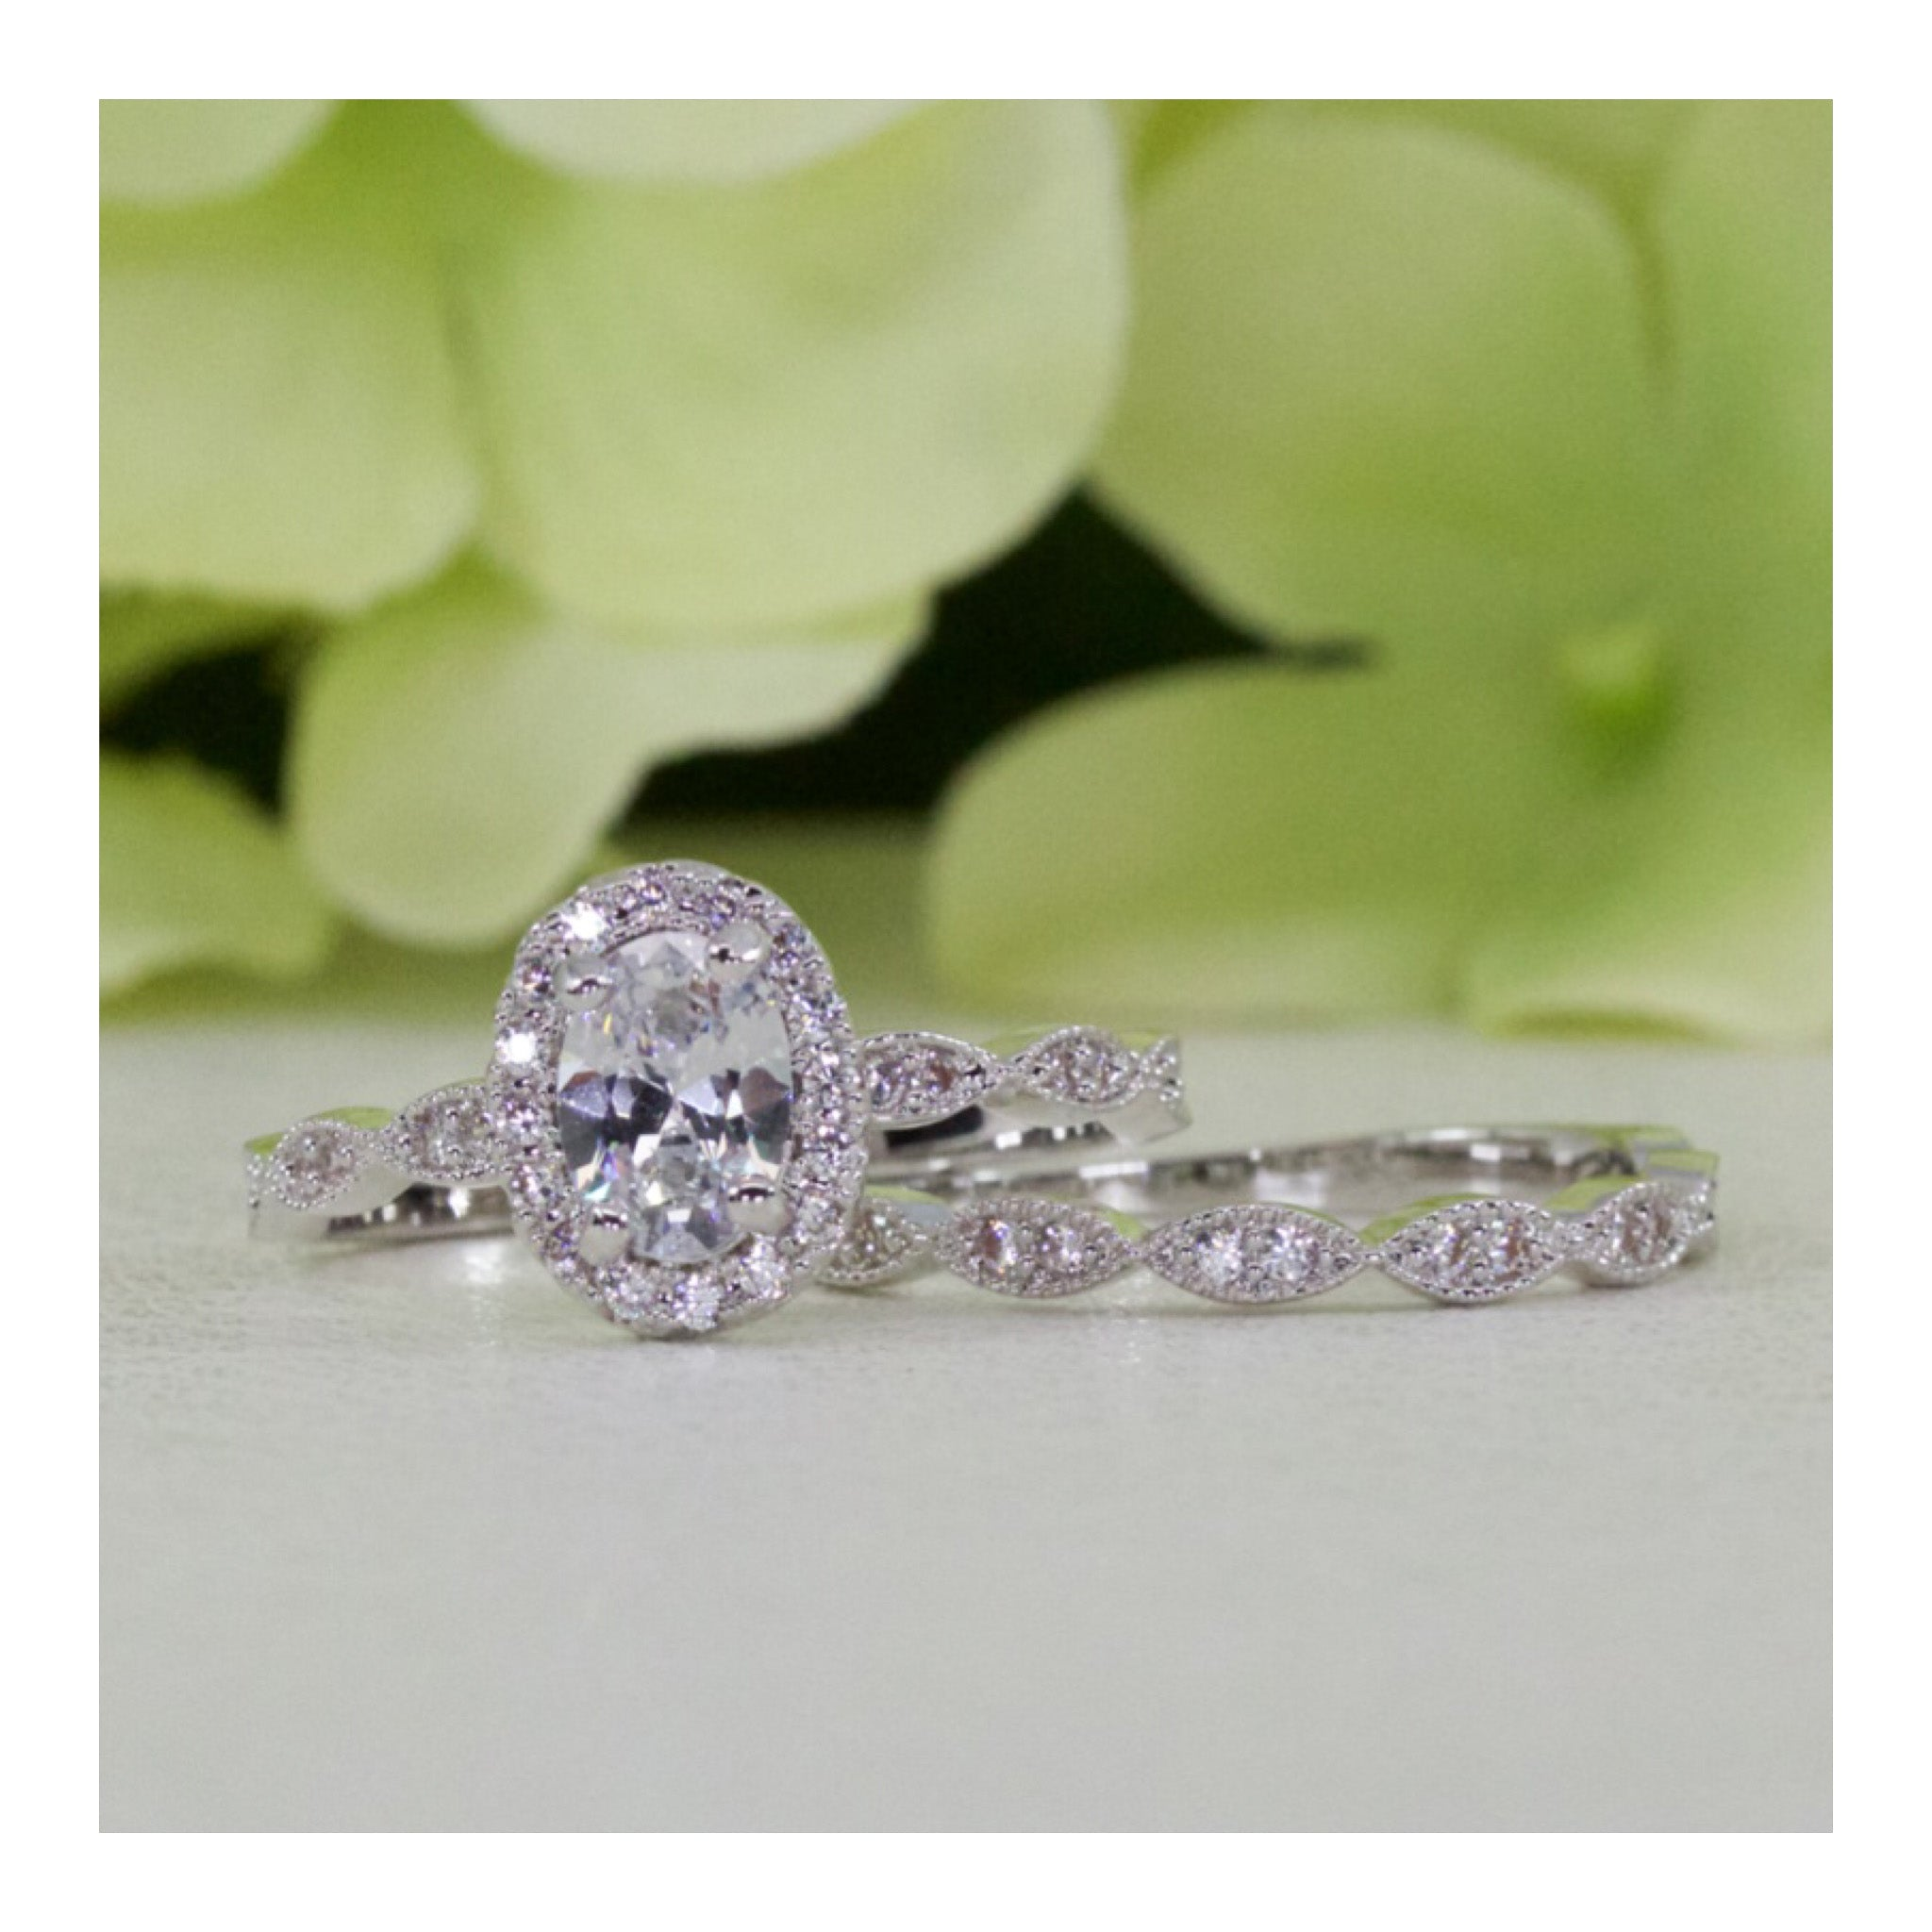 Halo Art Deco Style Oval Cz Engagement Ring In Sterling Silver